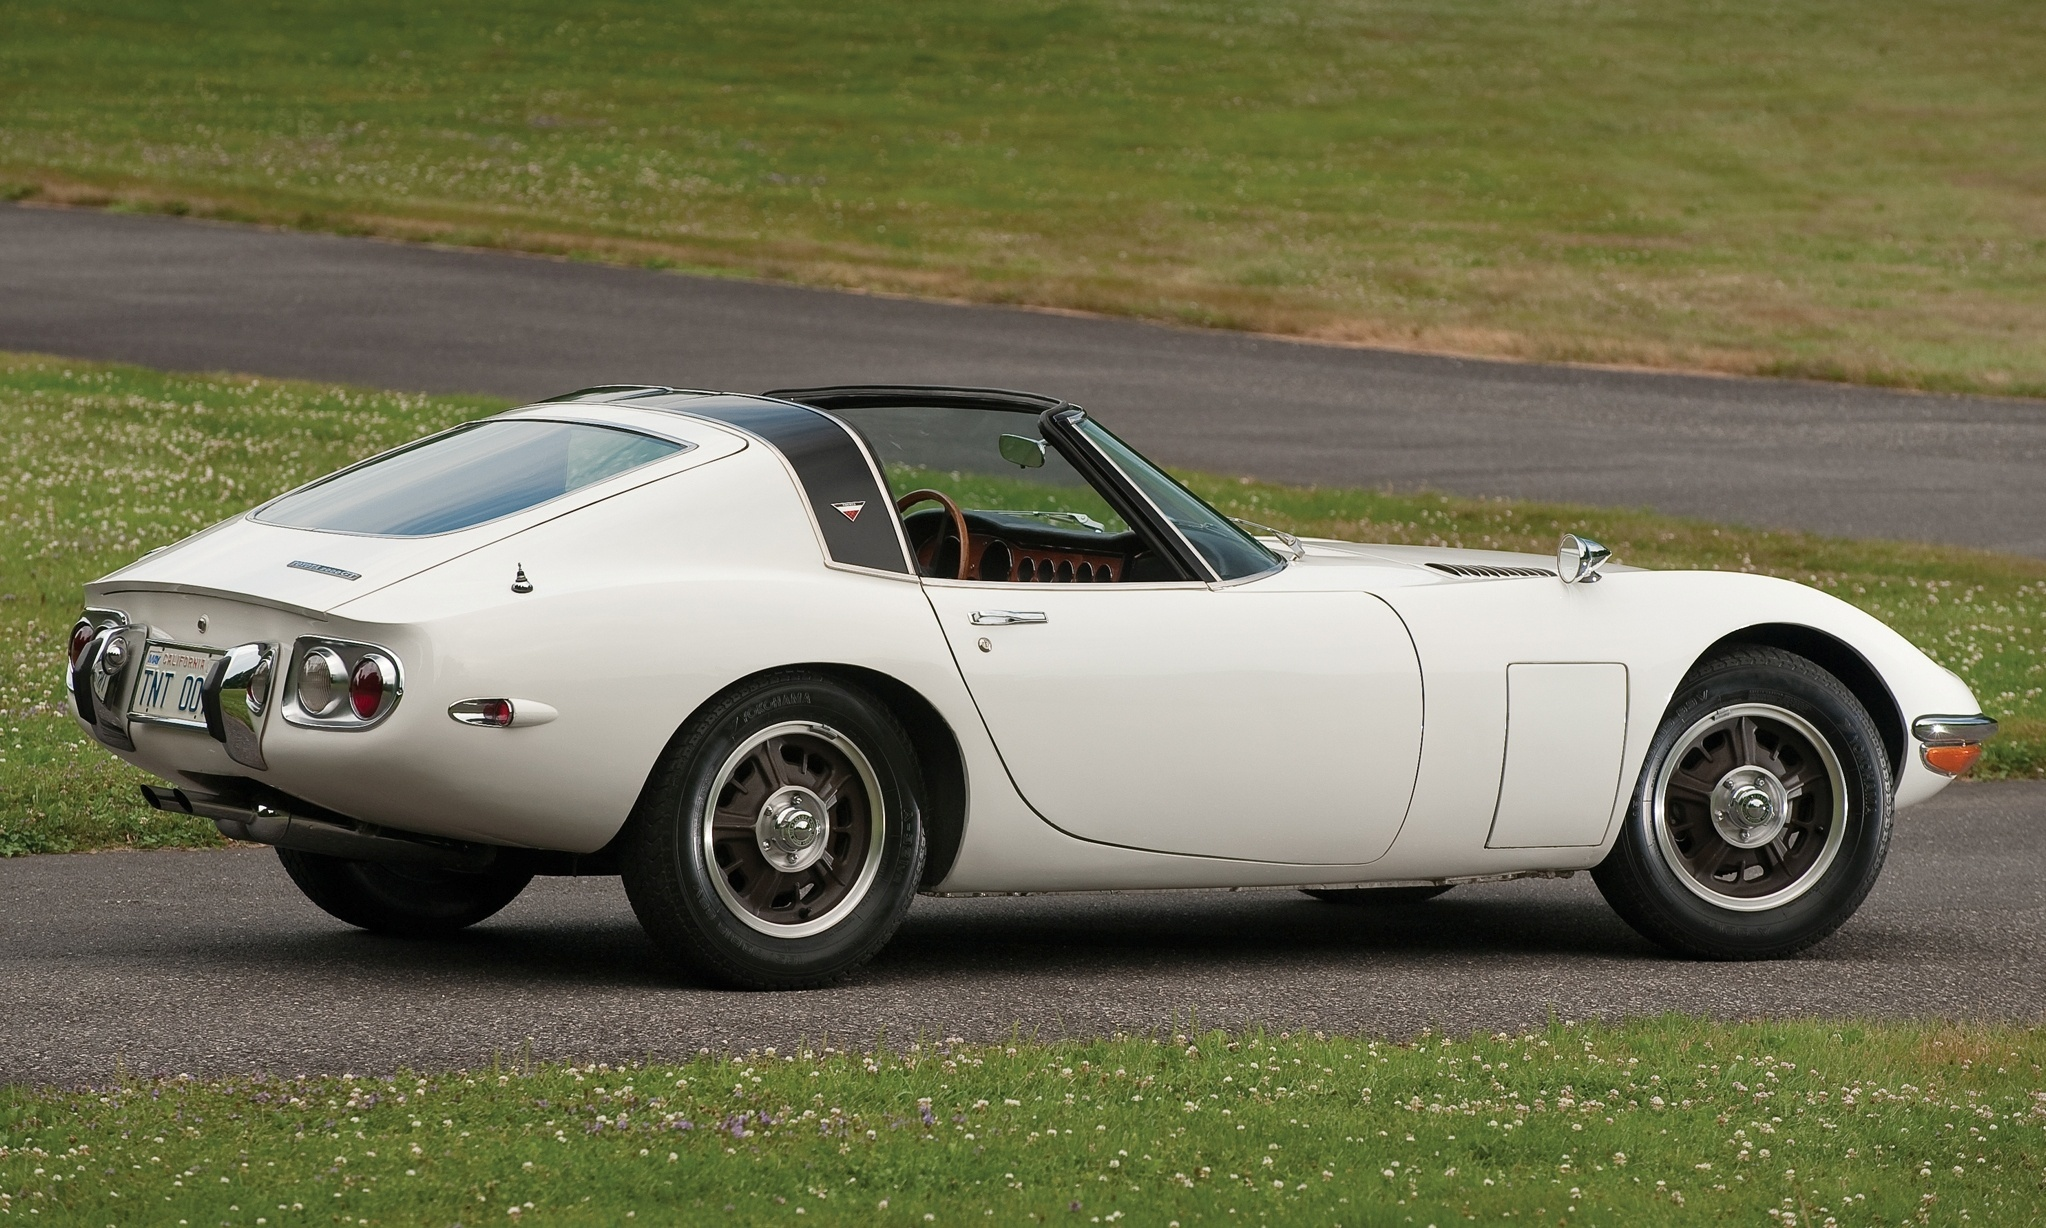 1966 toyota 2000gt targa bond movie car idea realized but earned only 200k in rm auctions. Black Bedroom Furniture Sets. Home Design Ideas